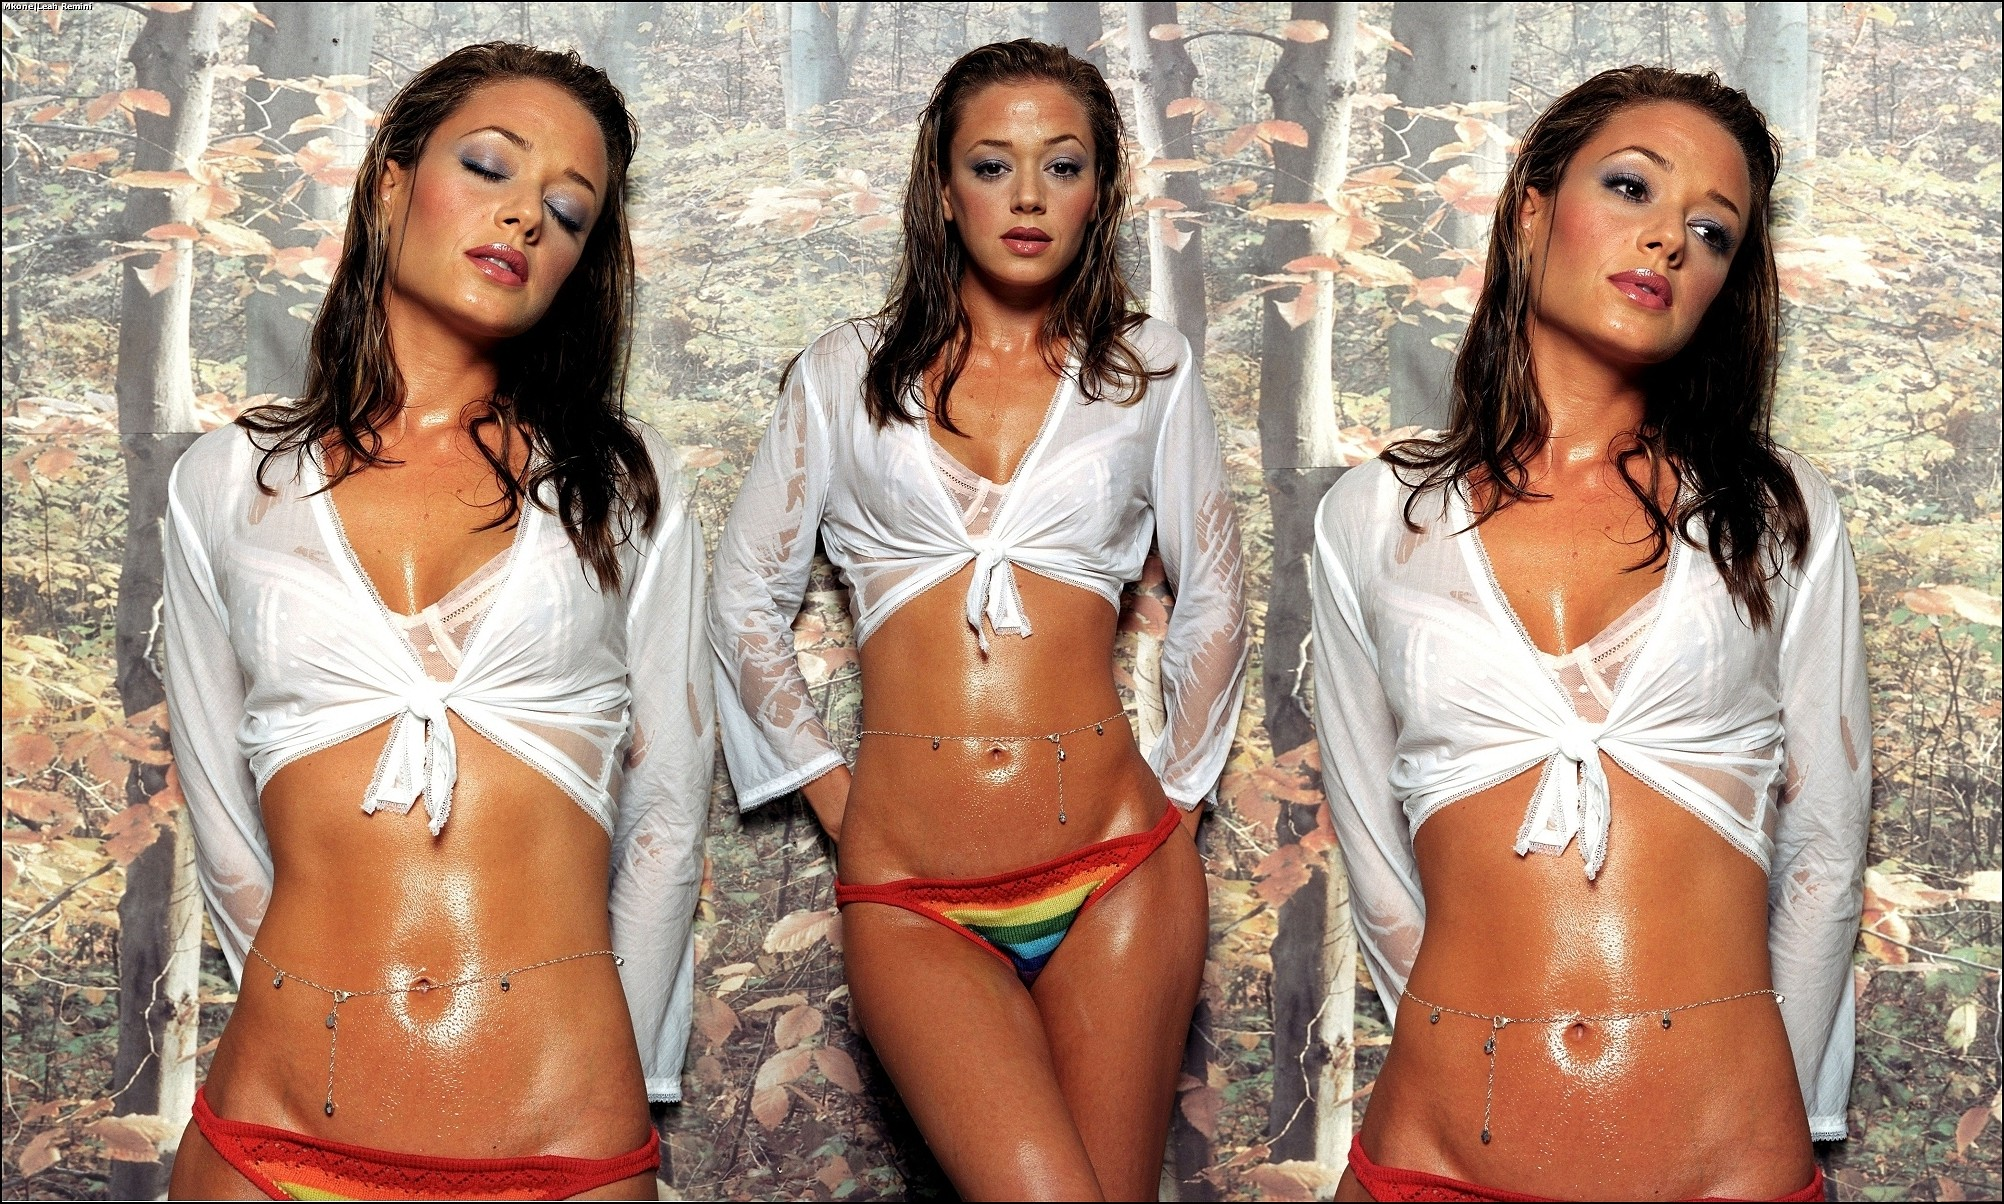 nude picture of leah remini